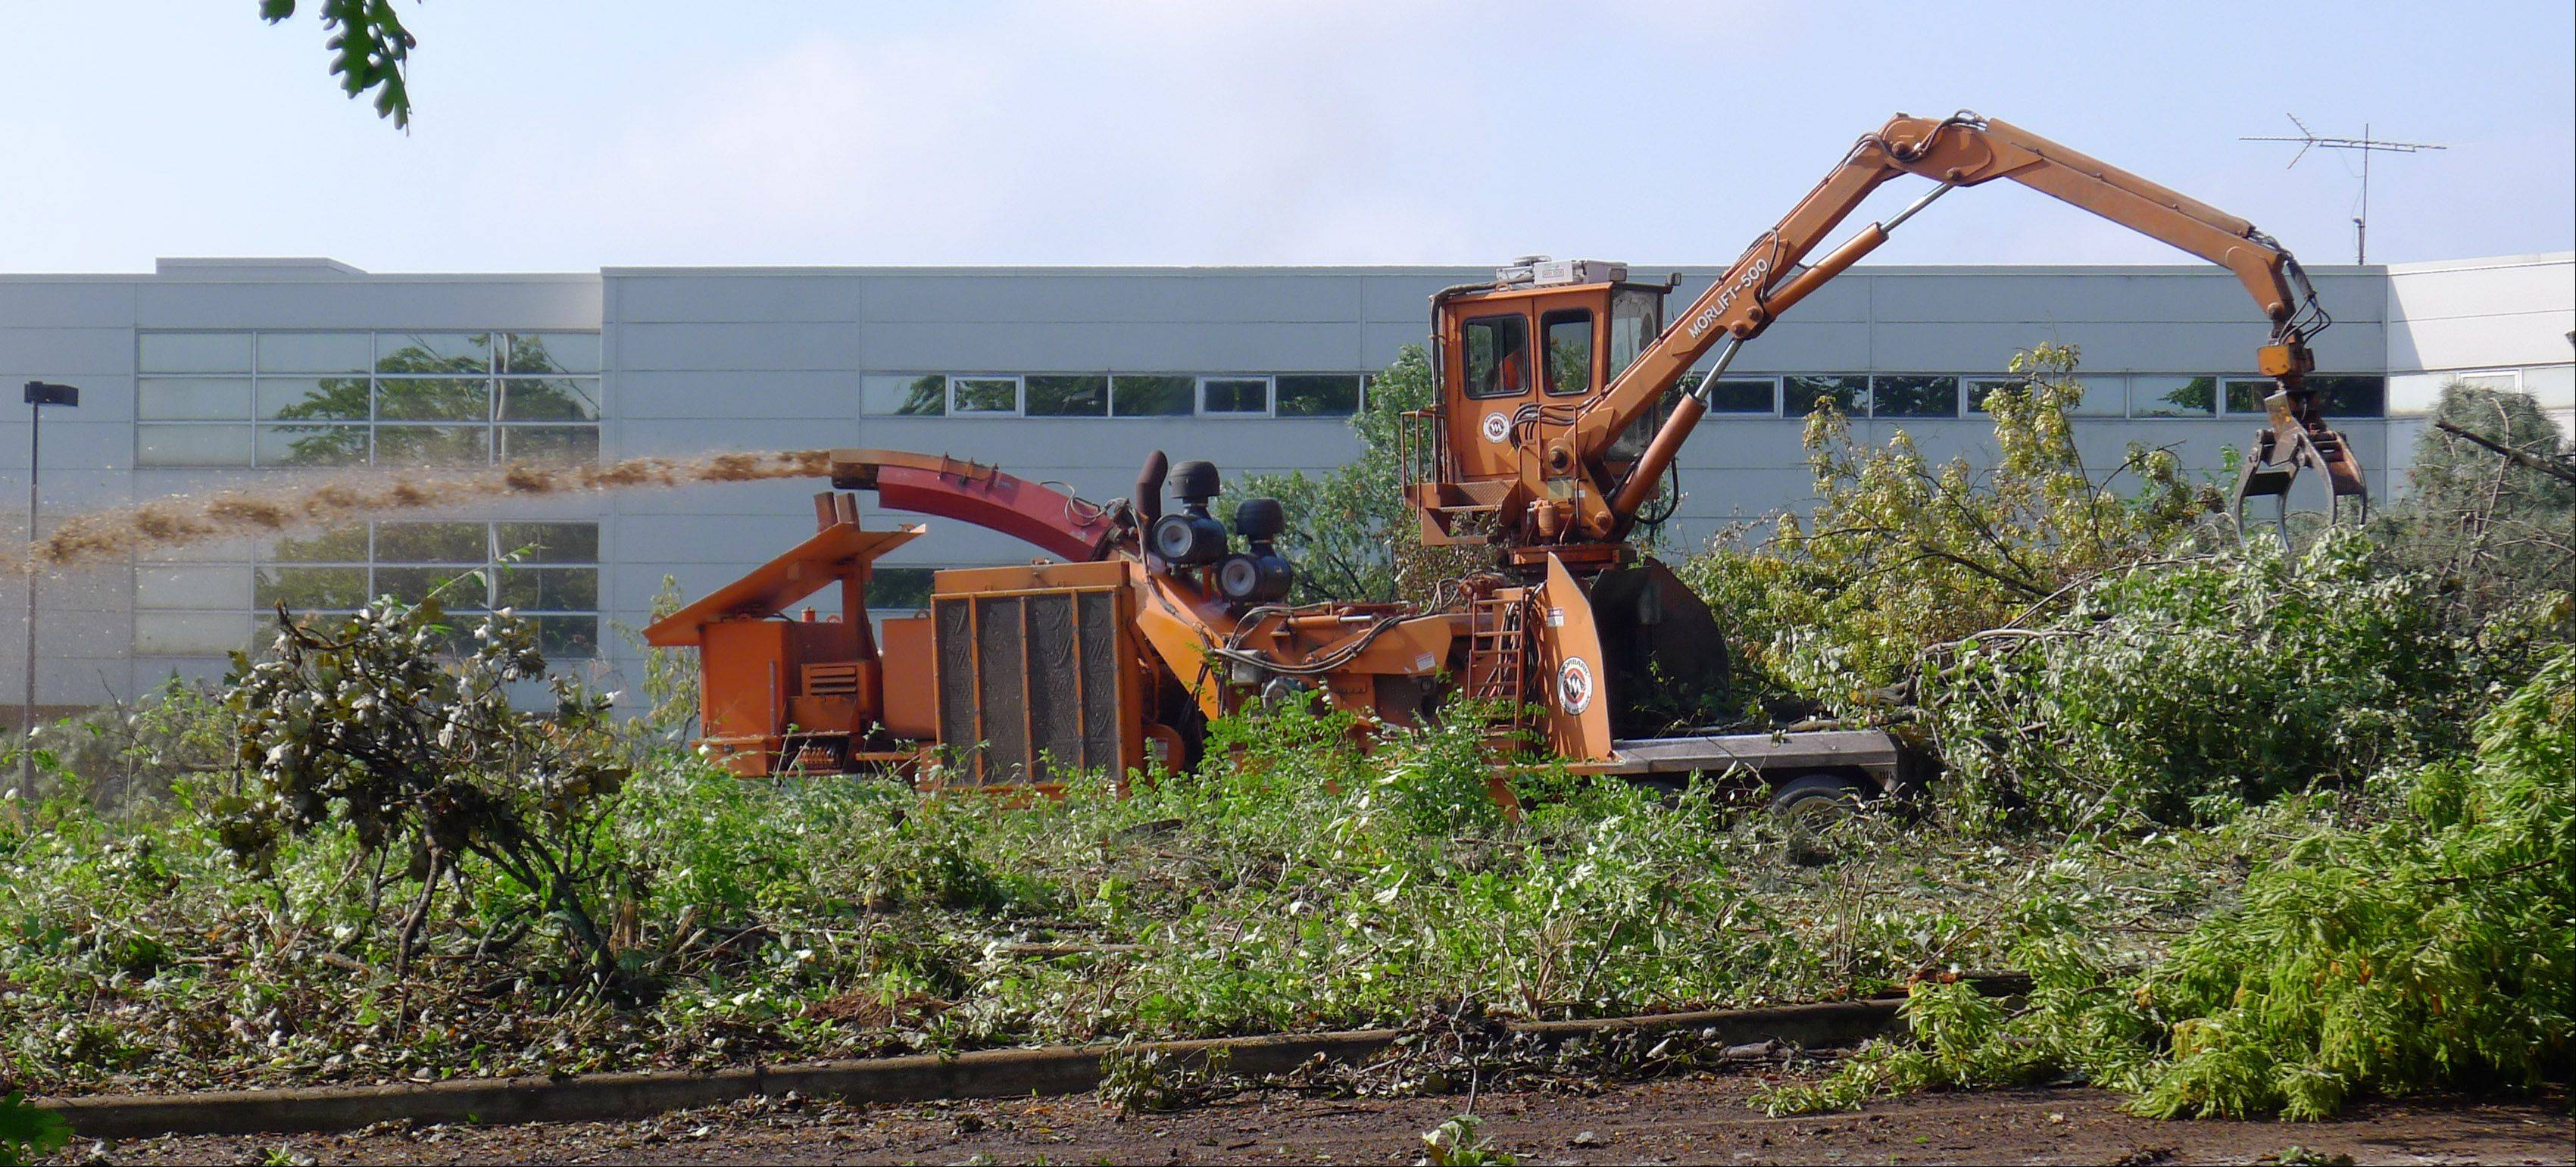 Crews are in the process of removing a significant portion of the trees at the location of a long-vacant corporate training center along Warrenville Road in Lisle. The existing building eventually will be razed to make room for a $35 million technical school.